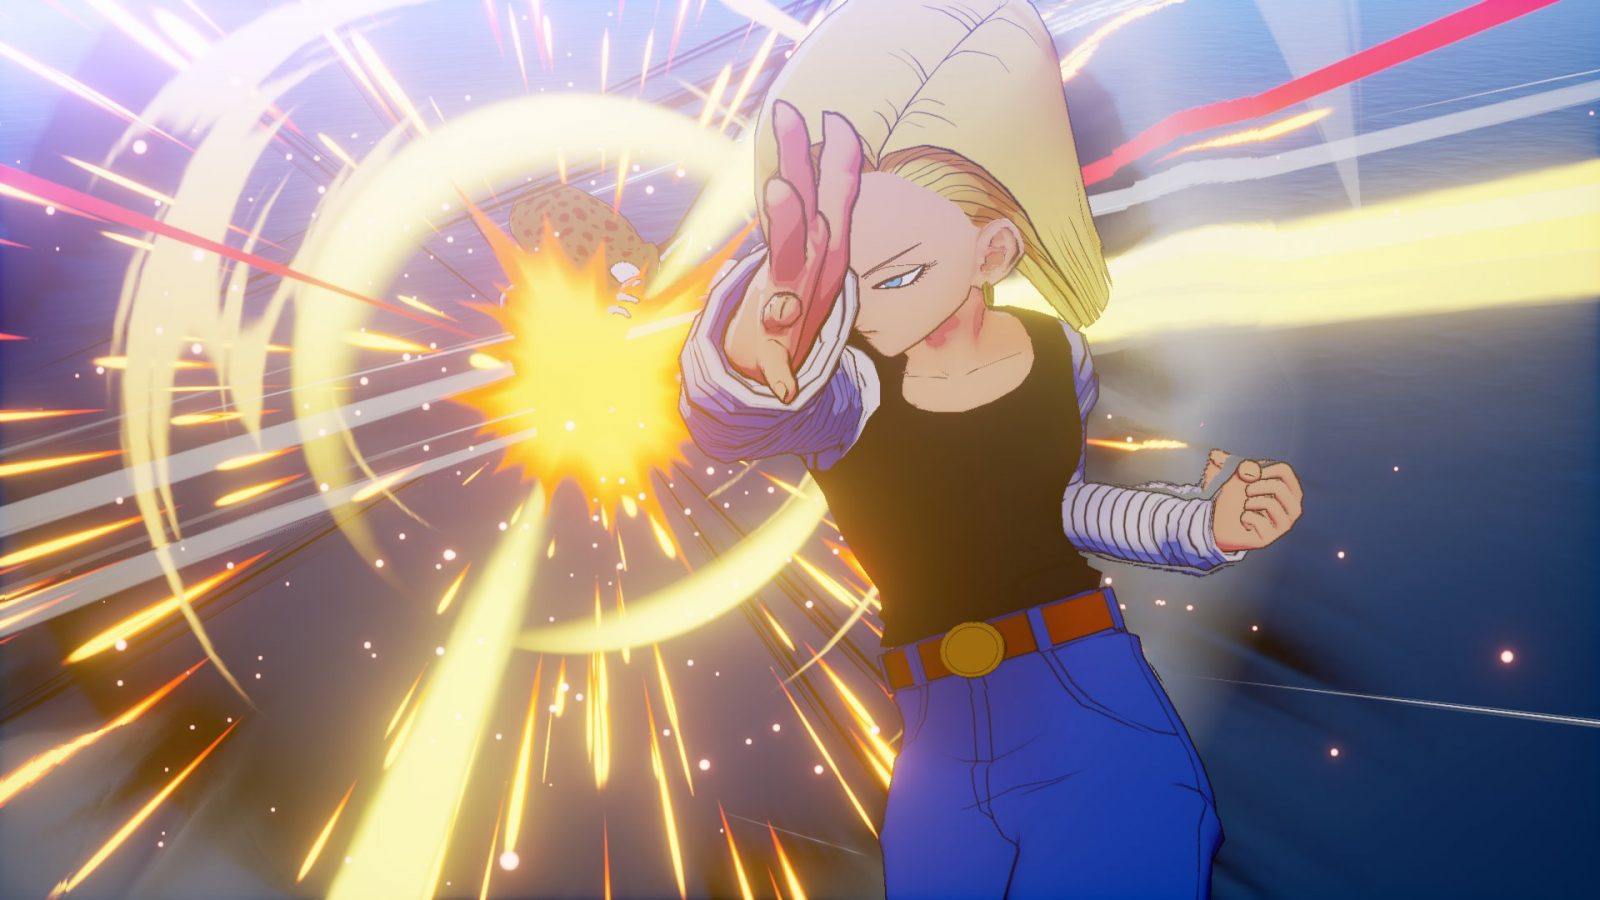 New Screenshots for Dragon Ball Z: Kakarot Show Off Android 18, Trunks, More